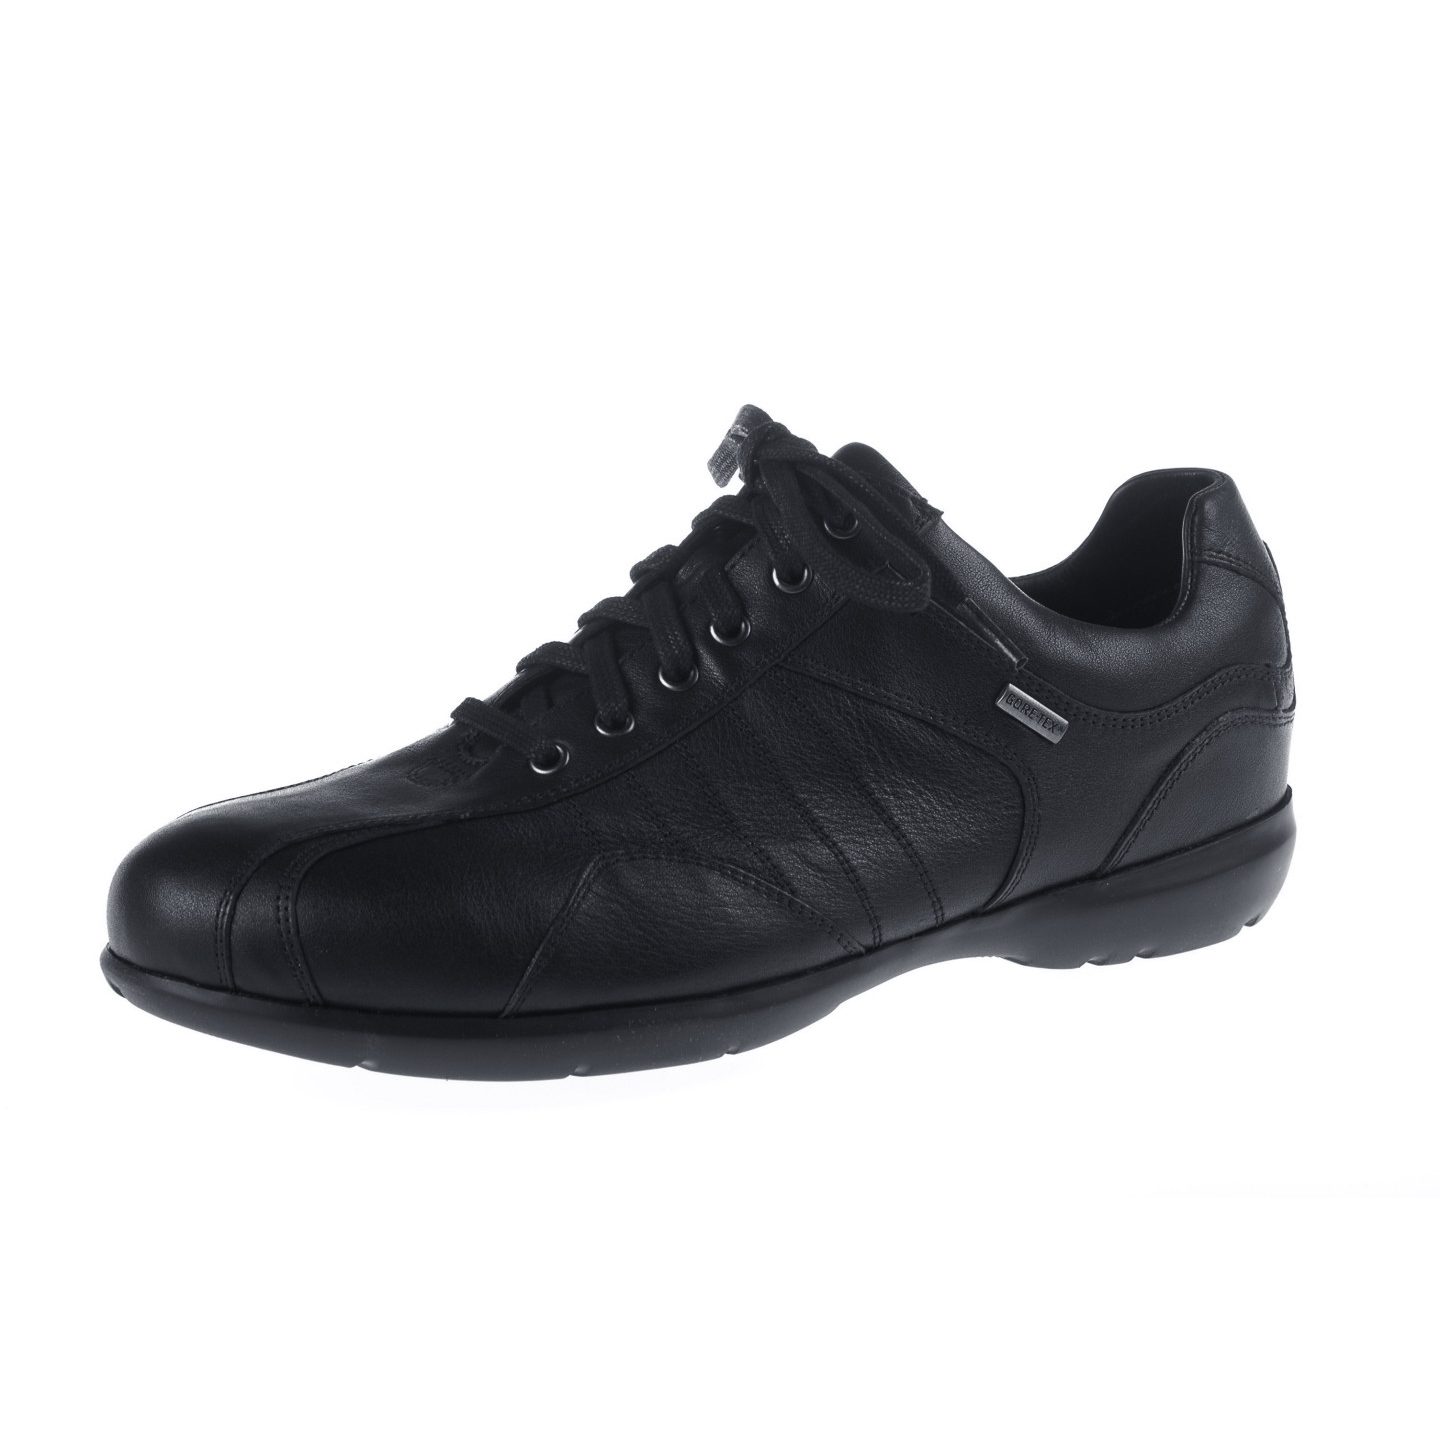 Men's Black Fashion Sneakers Ara Mens Vern Gore Tex Fashion